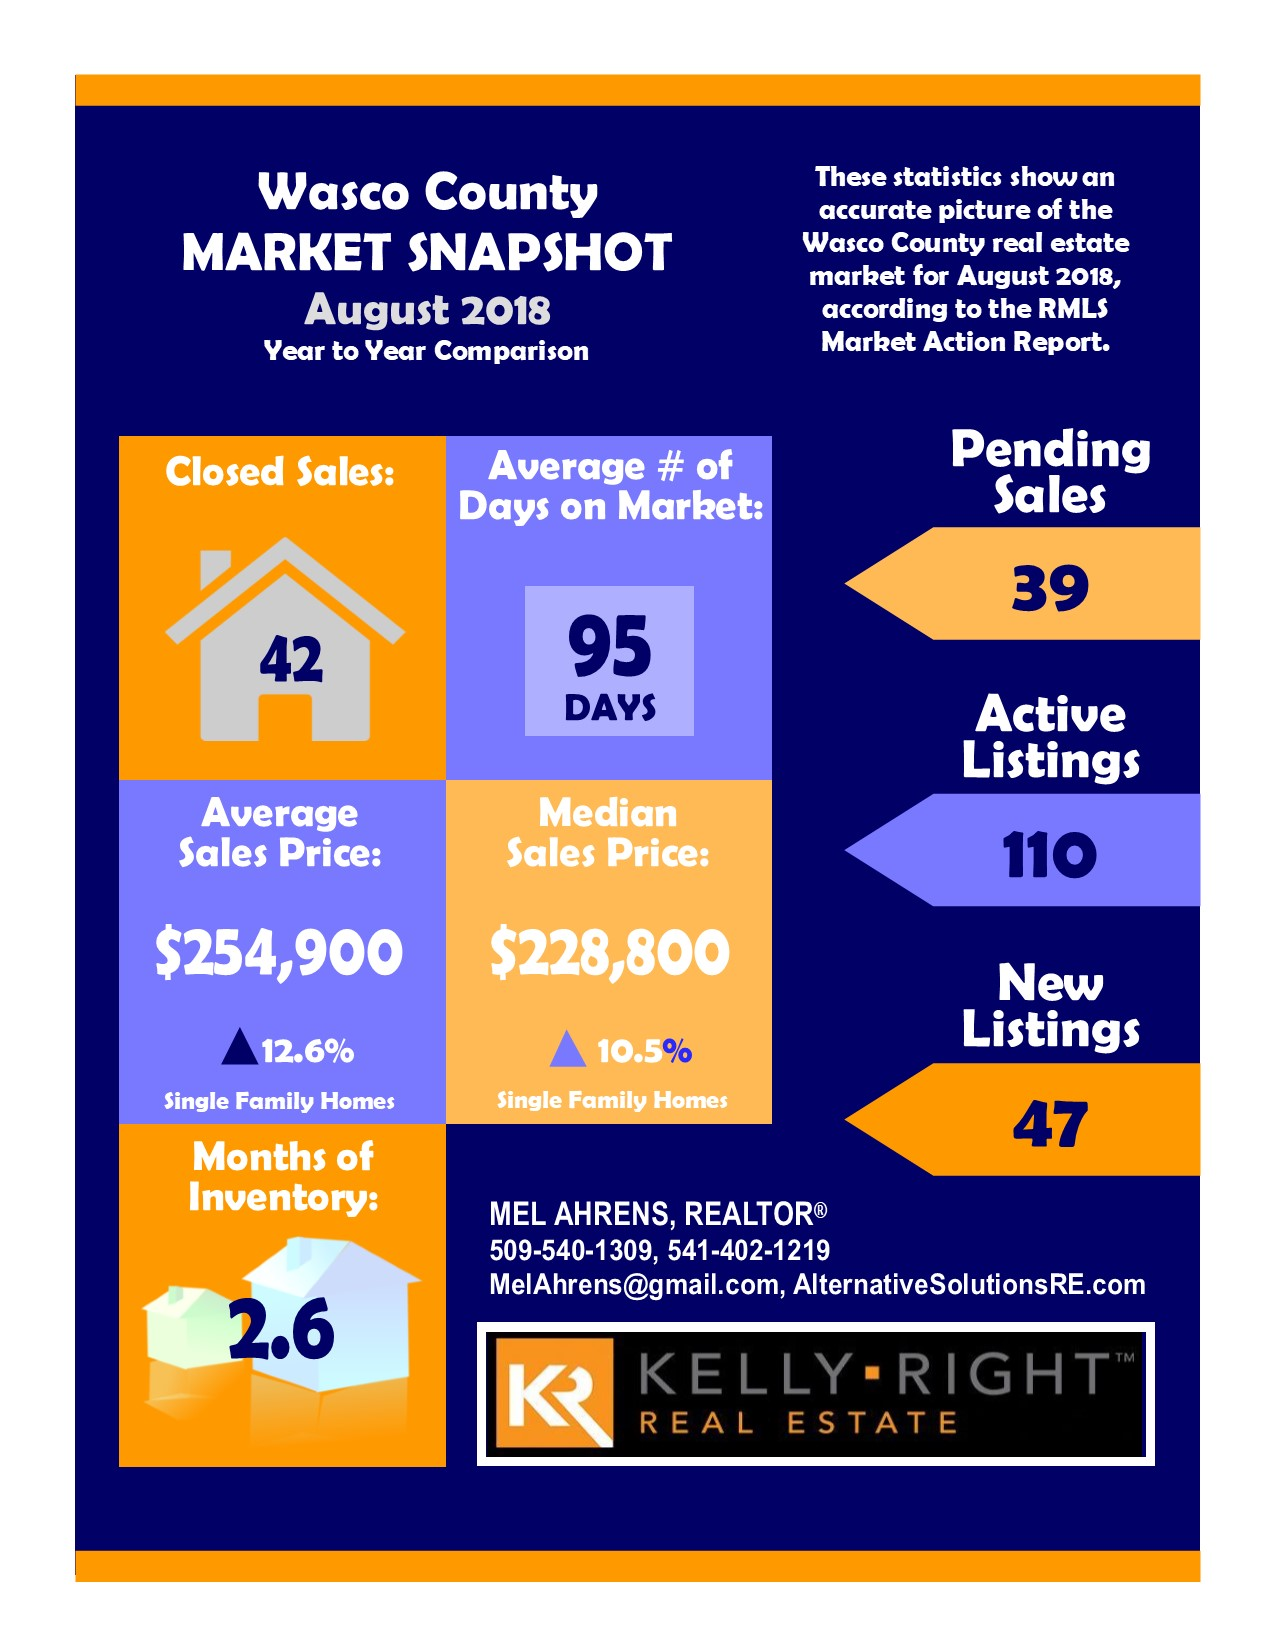 Wasco County Real Estate Market August 2018 Infographic